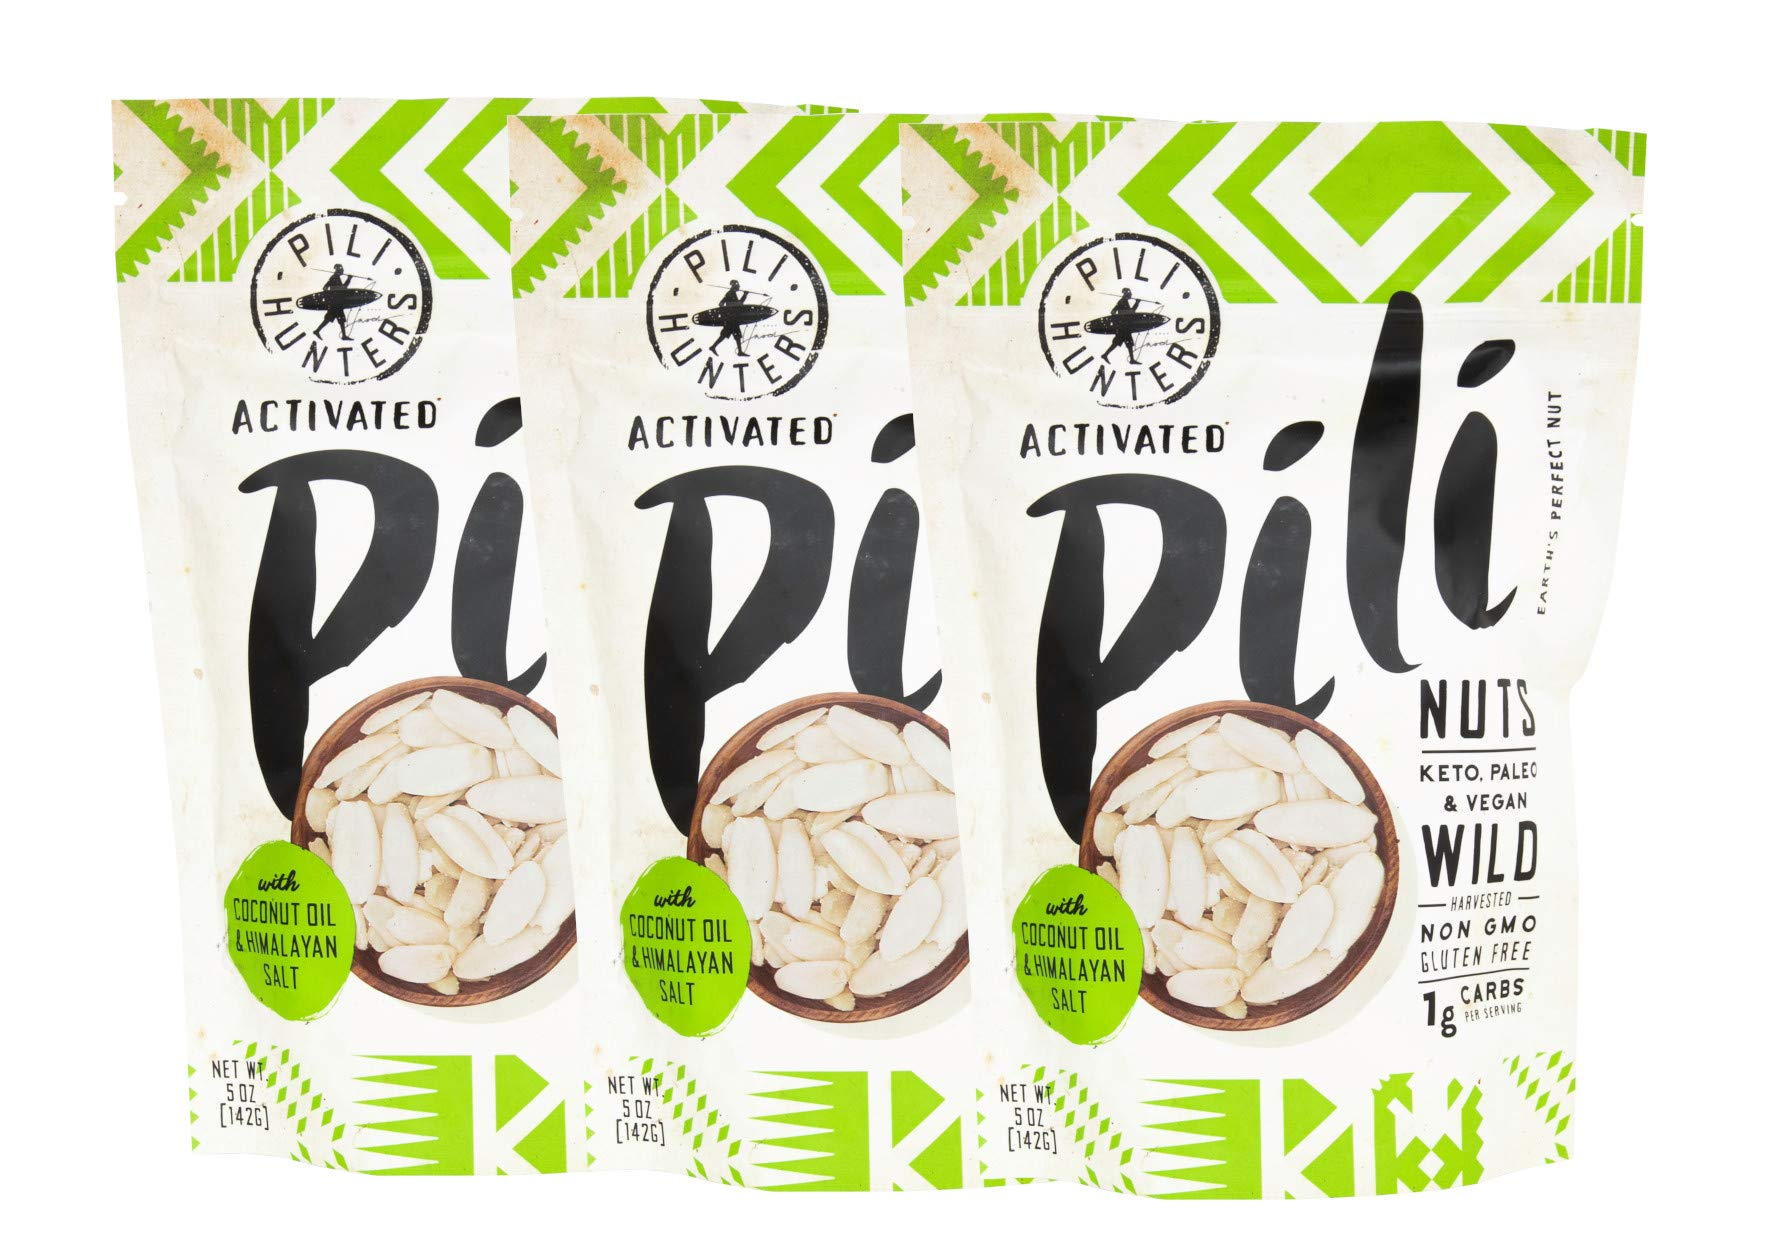 Pili Hunters Pili Nuts, AS SEEN ON SHARK TANK, Himalayan Salt and Coconut MCT Oil, The Original Wild Sprouted Pili Nut, Perfect Keto Friendly Snack, Vegan, Paleo and Keto Certified, Three 5 Ounce Bag